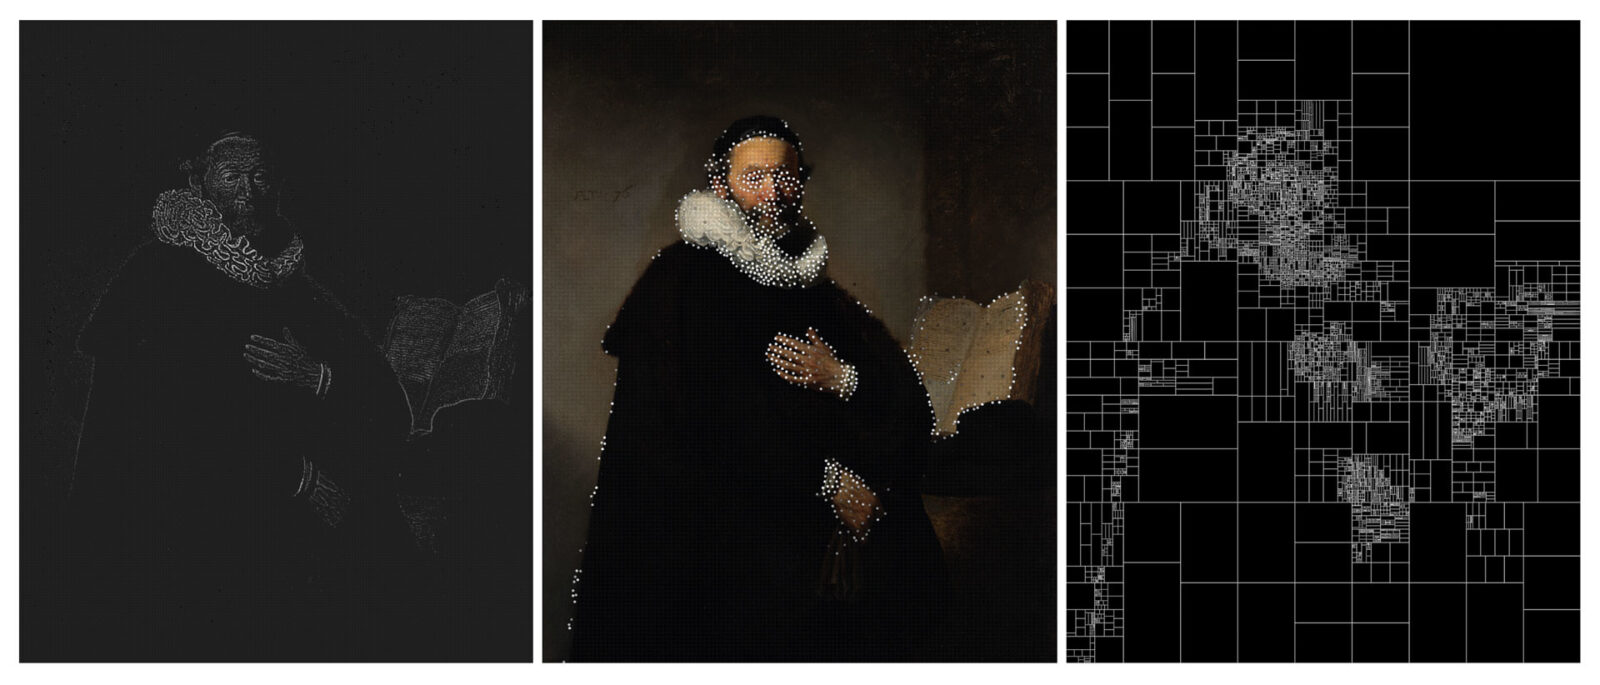 Color Palettes of Historic Paintings Subdivided with Algorithms by Dimitris Ladopoulos